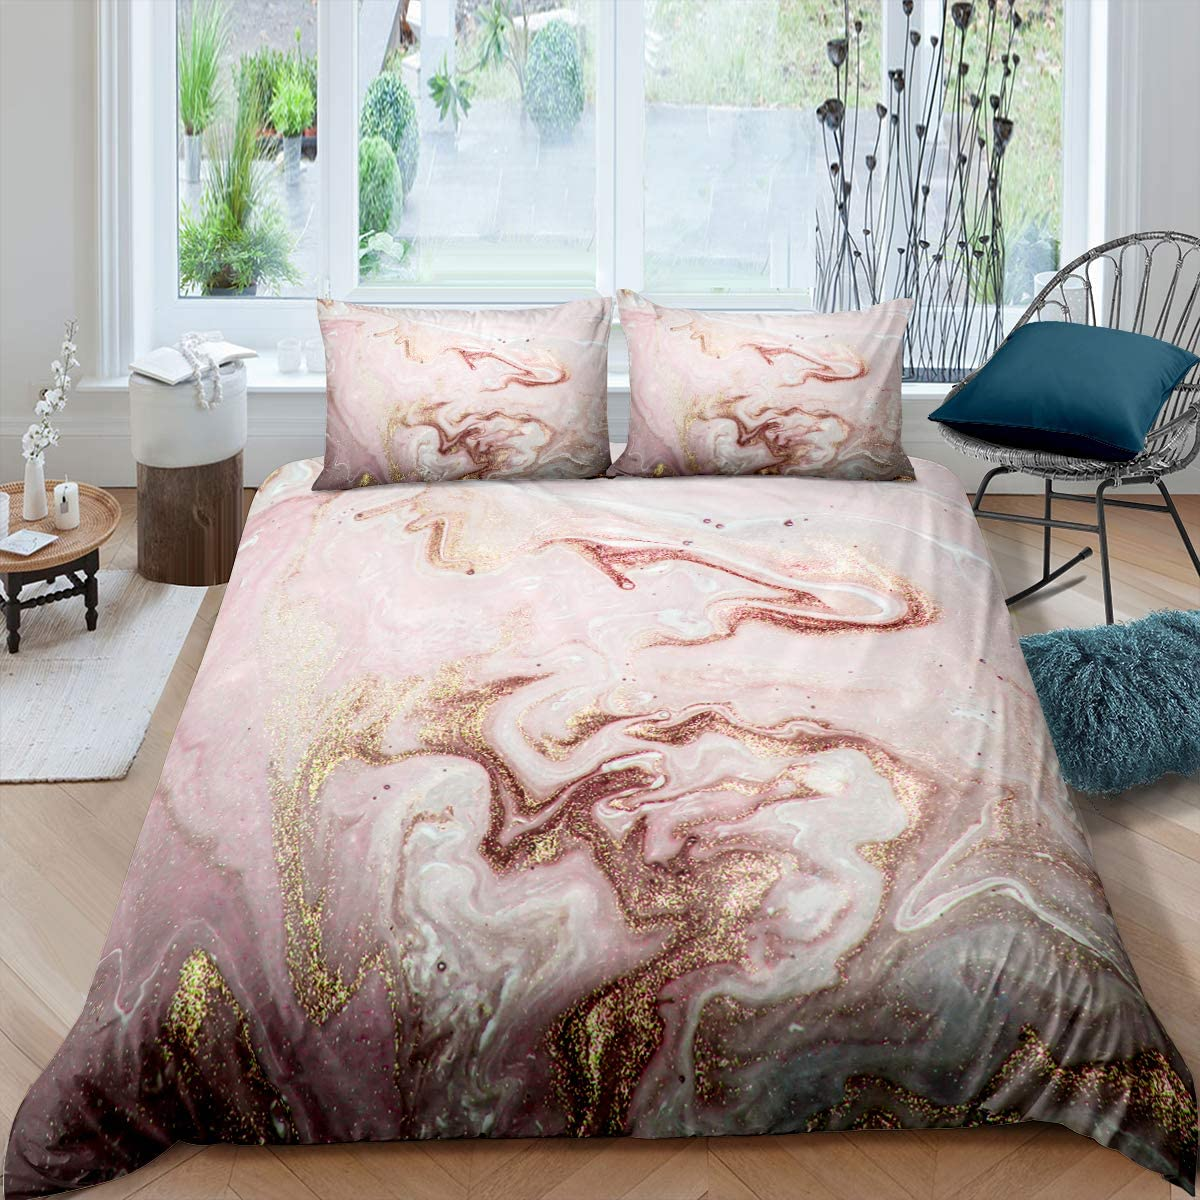 Queen Size Comforter Set Pink Colorful Marble Oil Painting Design Quilt Sets with 2 Pillowcases for Girls Teens